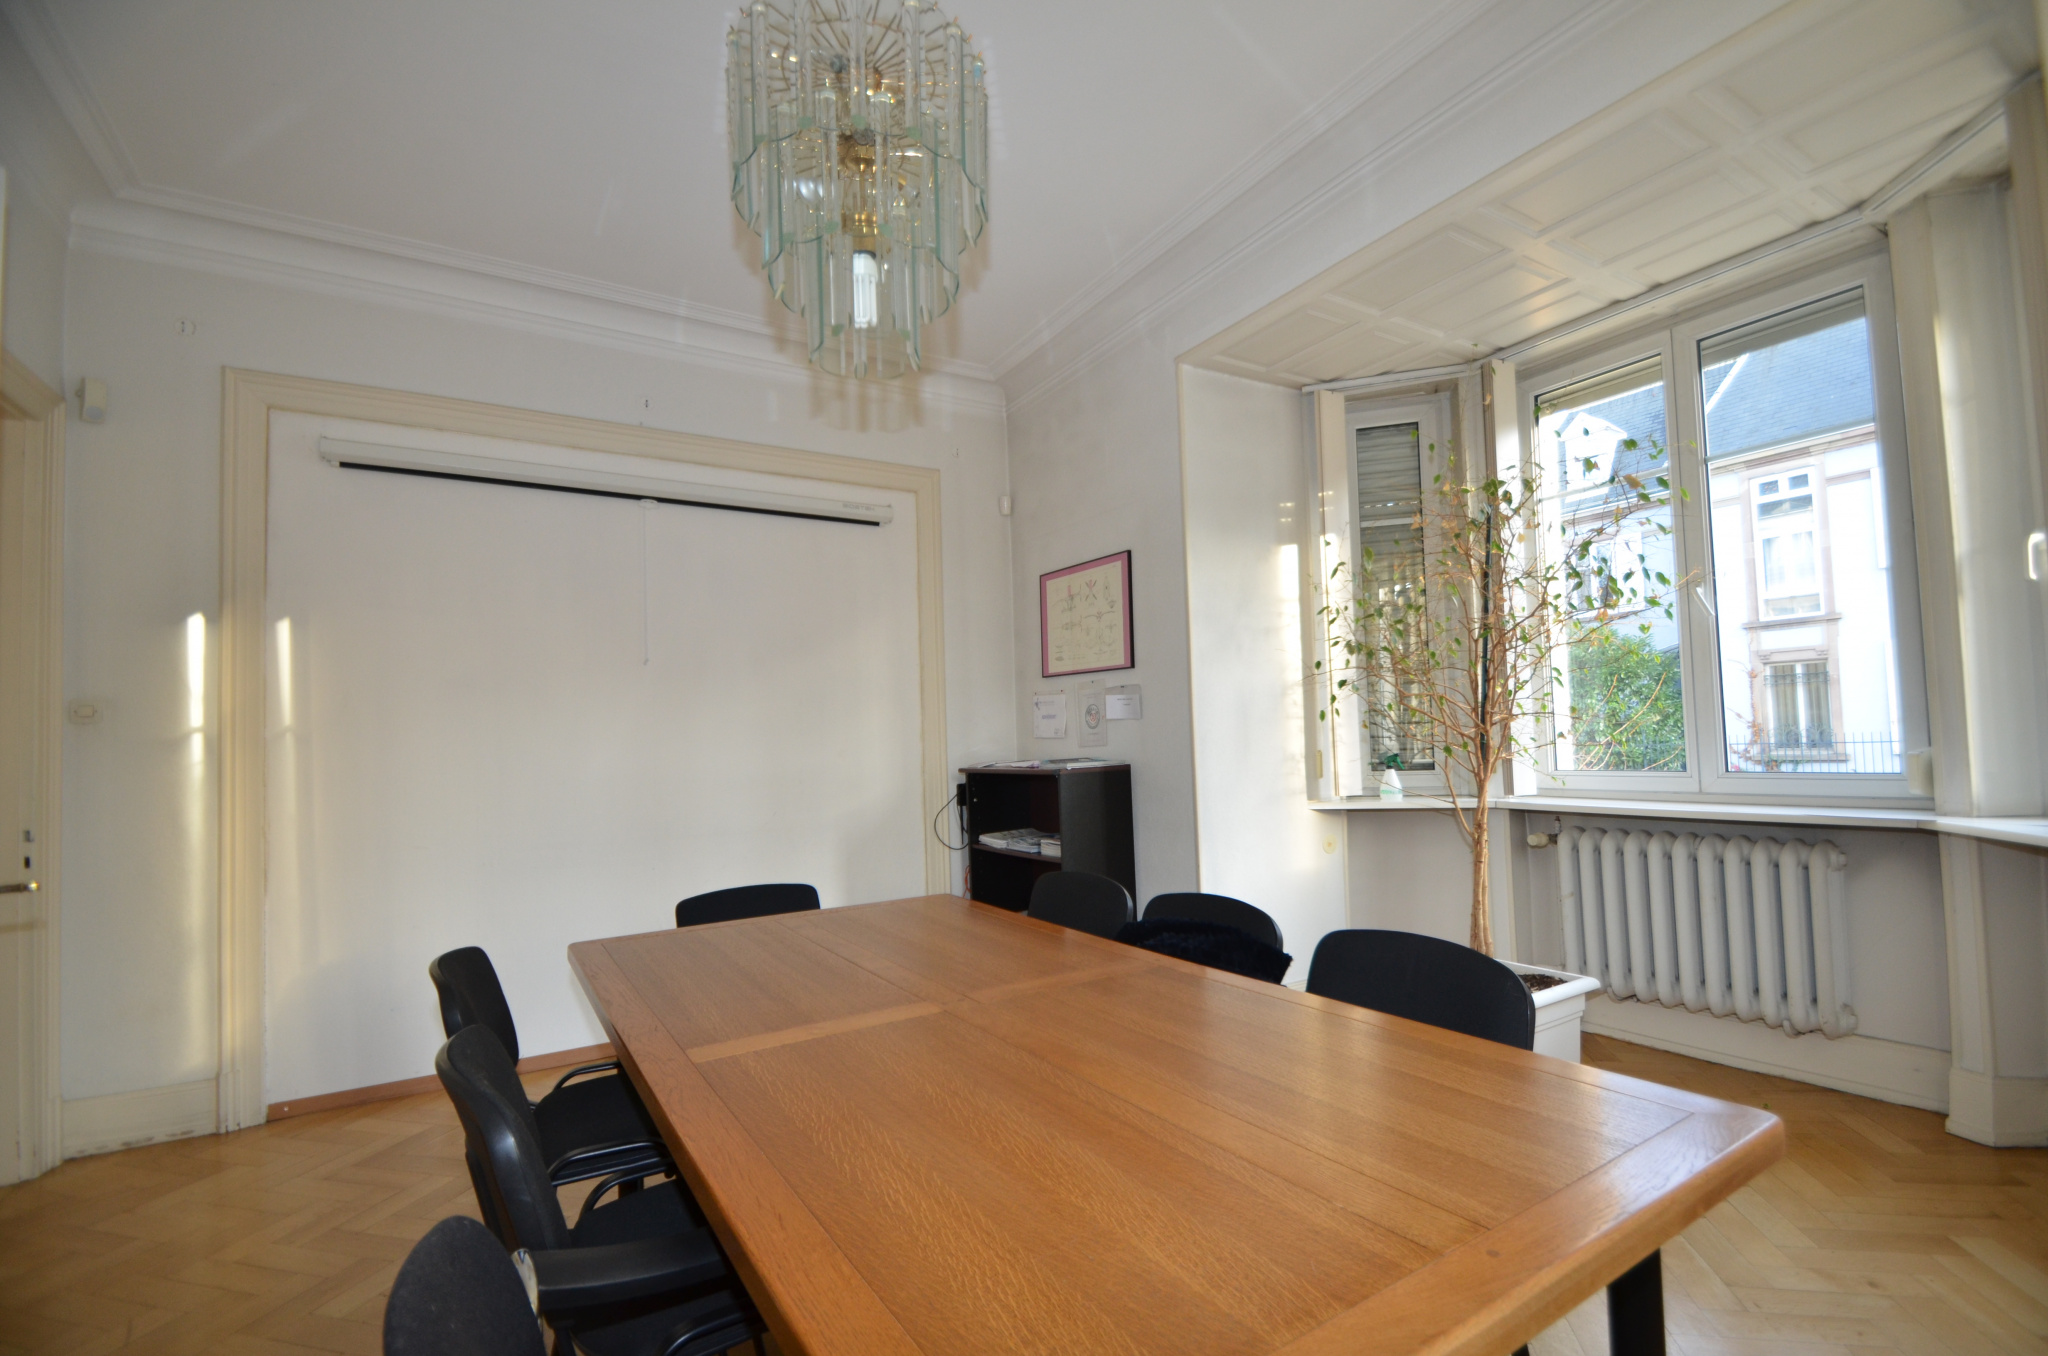 Achat Local commercial ou professionnel mulhouse